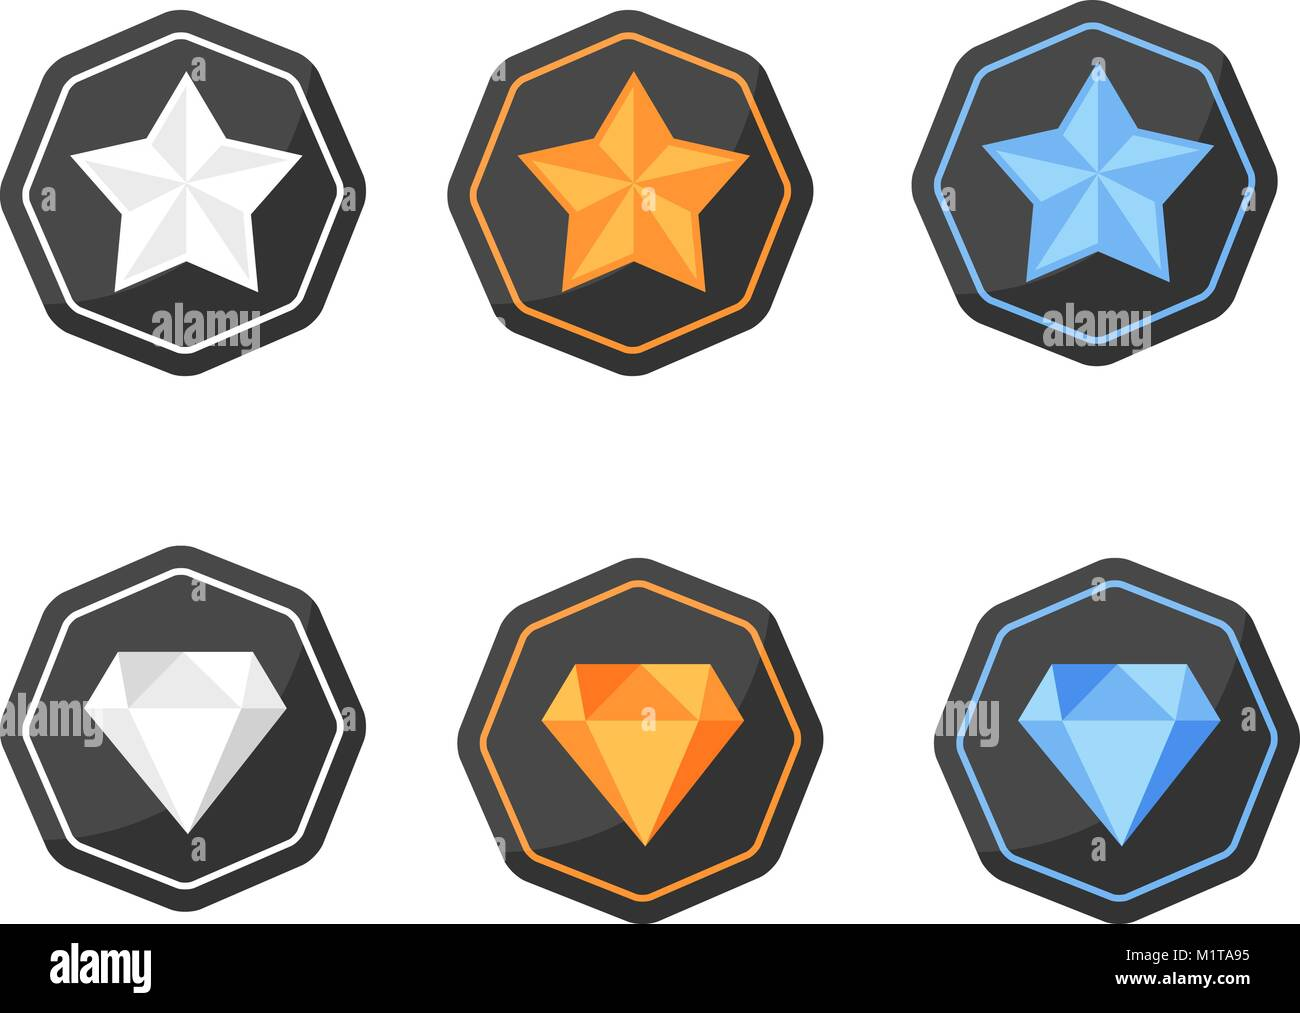 Vector Set Of Icons With Awards Symbols Of Stars And Diamonds In